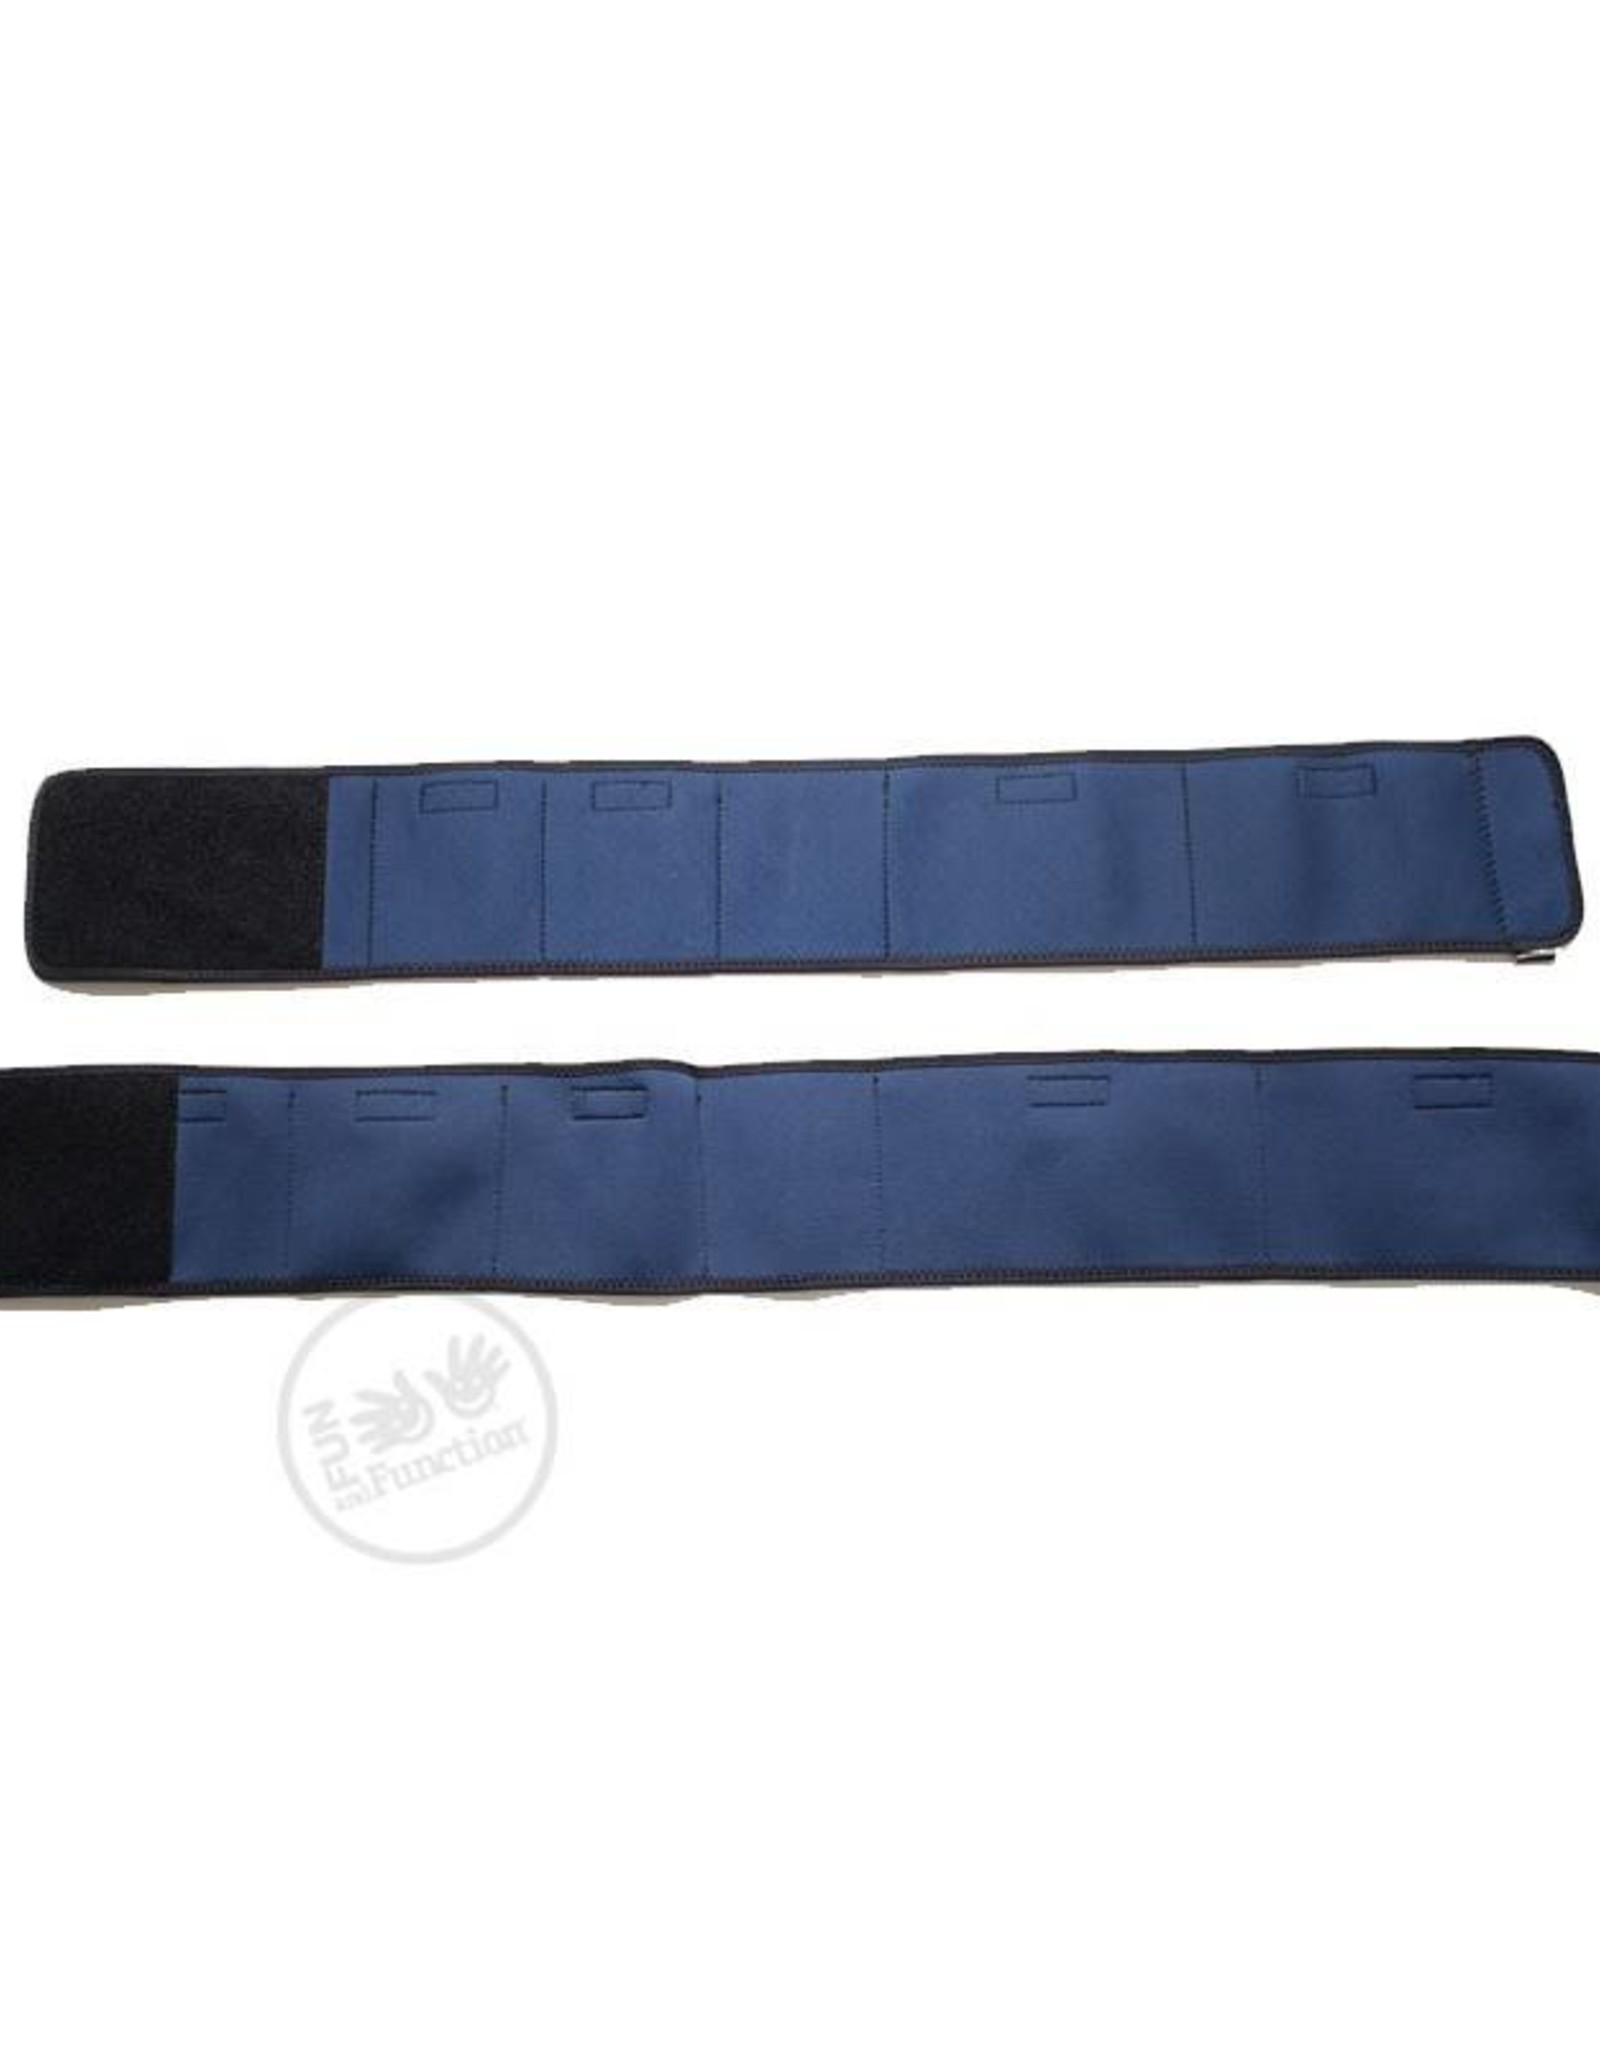 Weighted Compression Belt